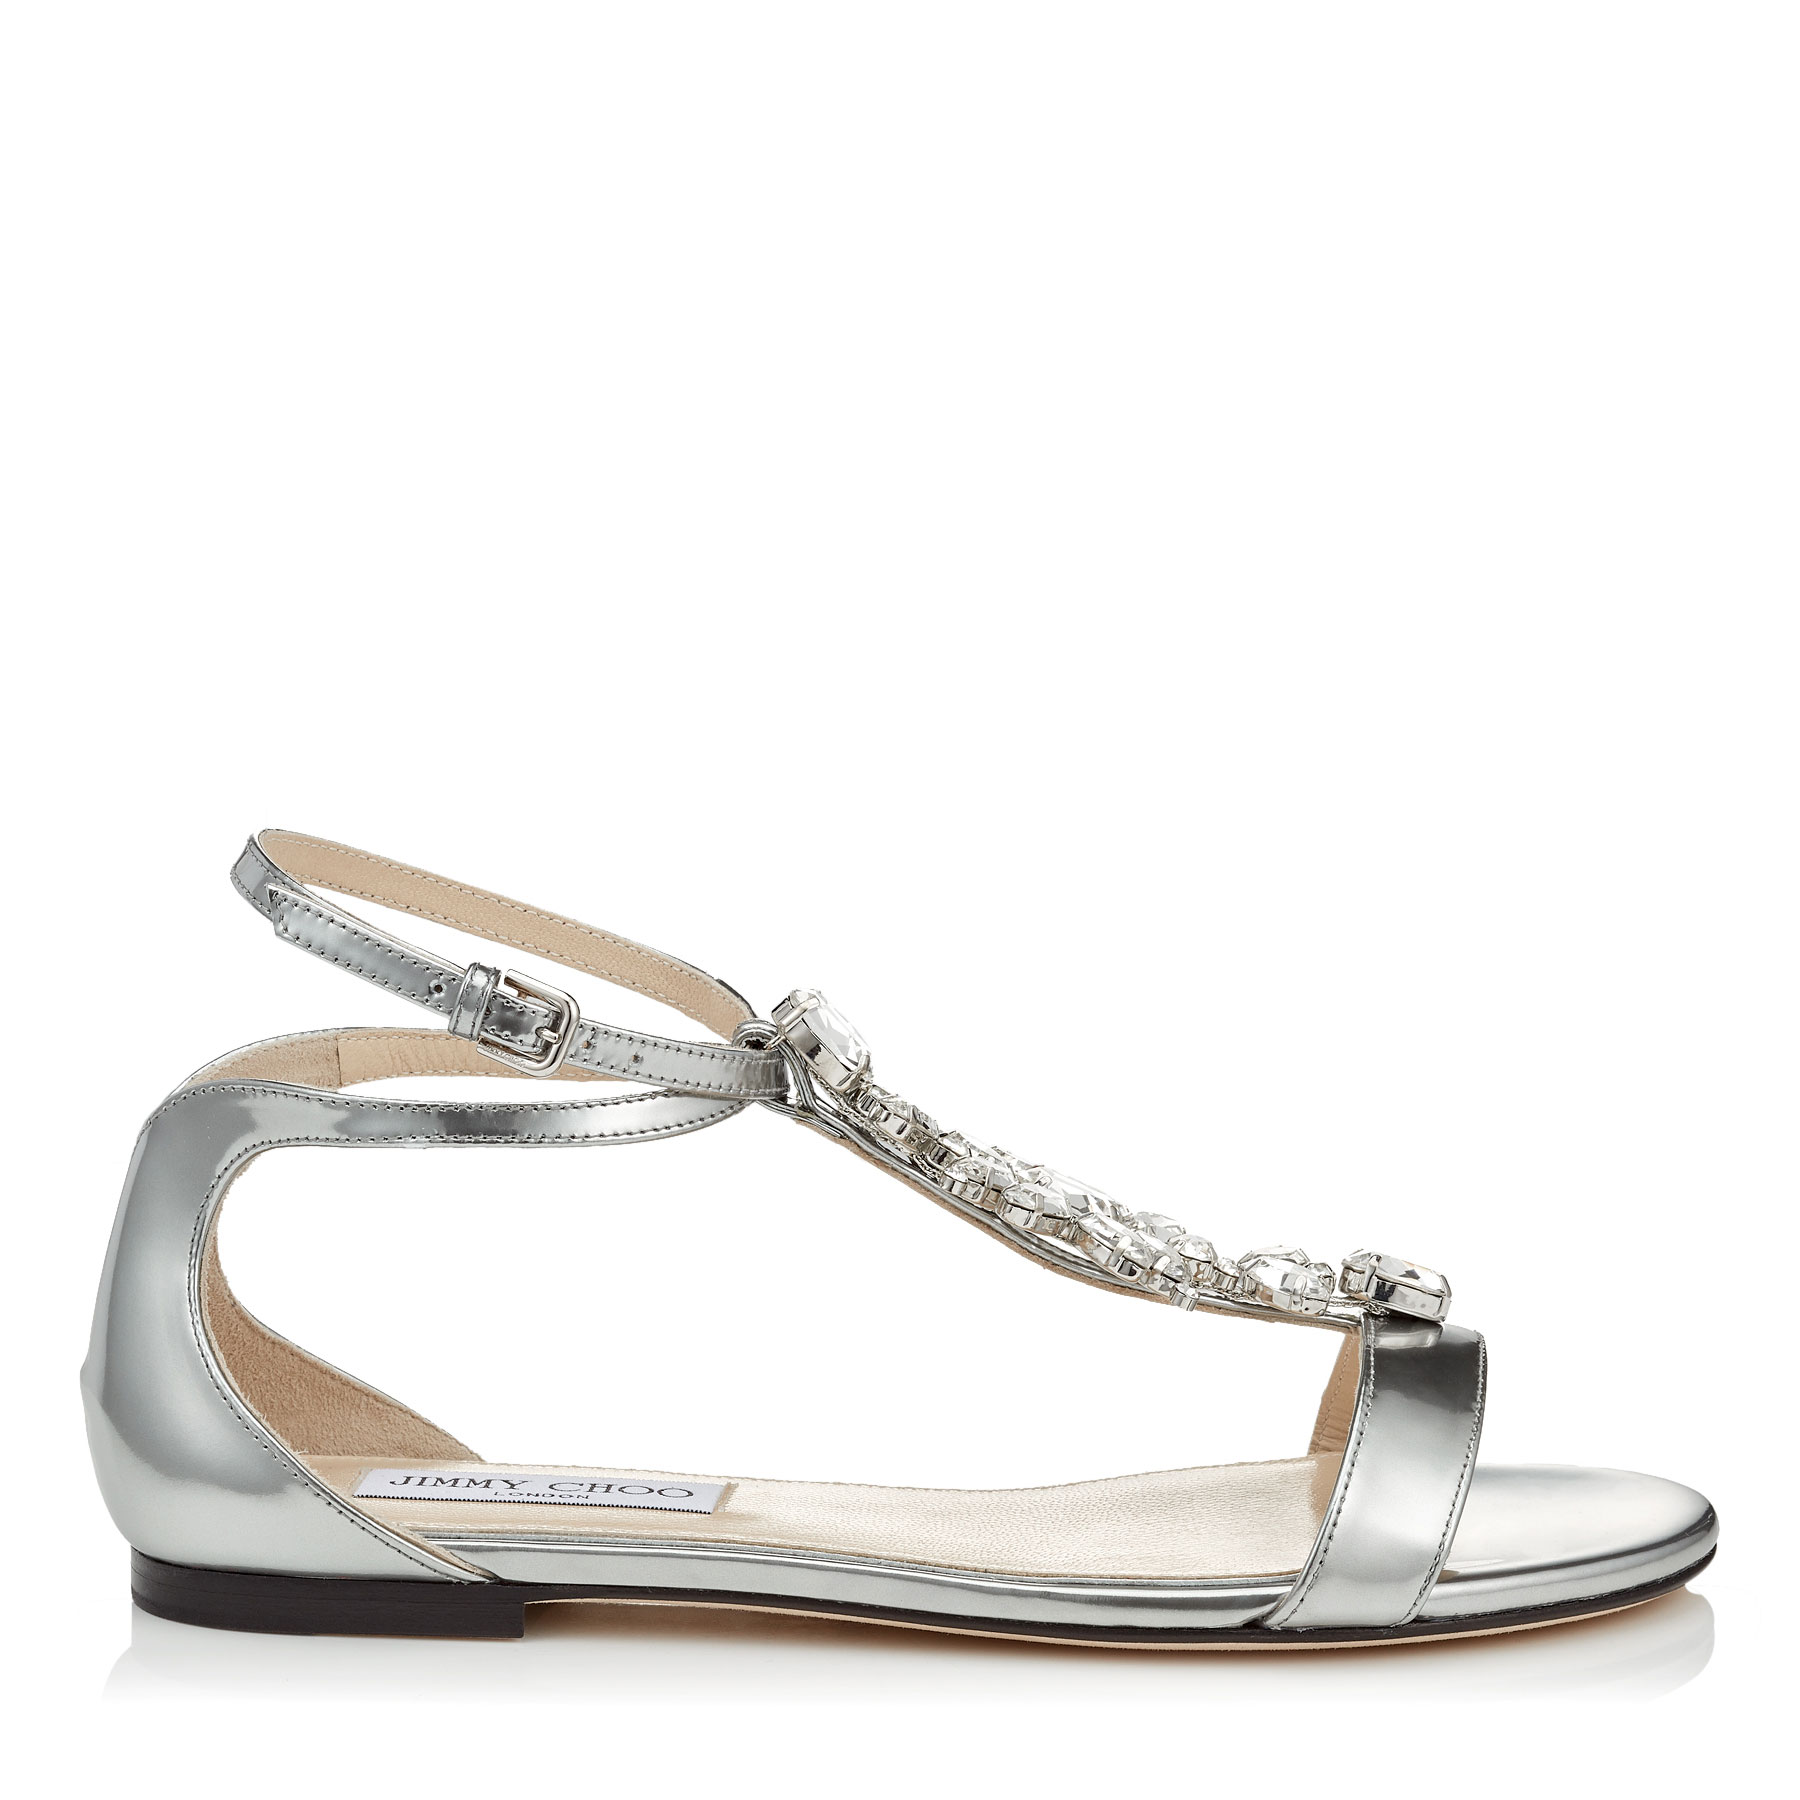 AVERIE FLAT Silver Liquid Mirror Sandals with Silver Crystal Piece by Jimmy Choo